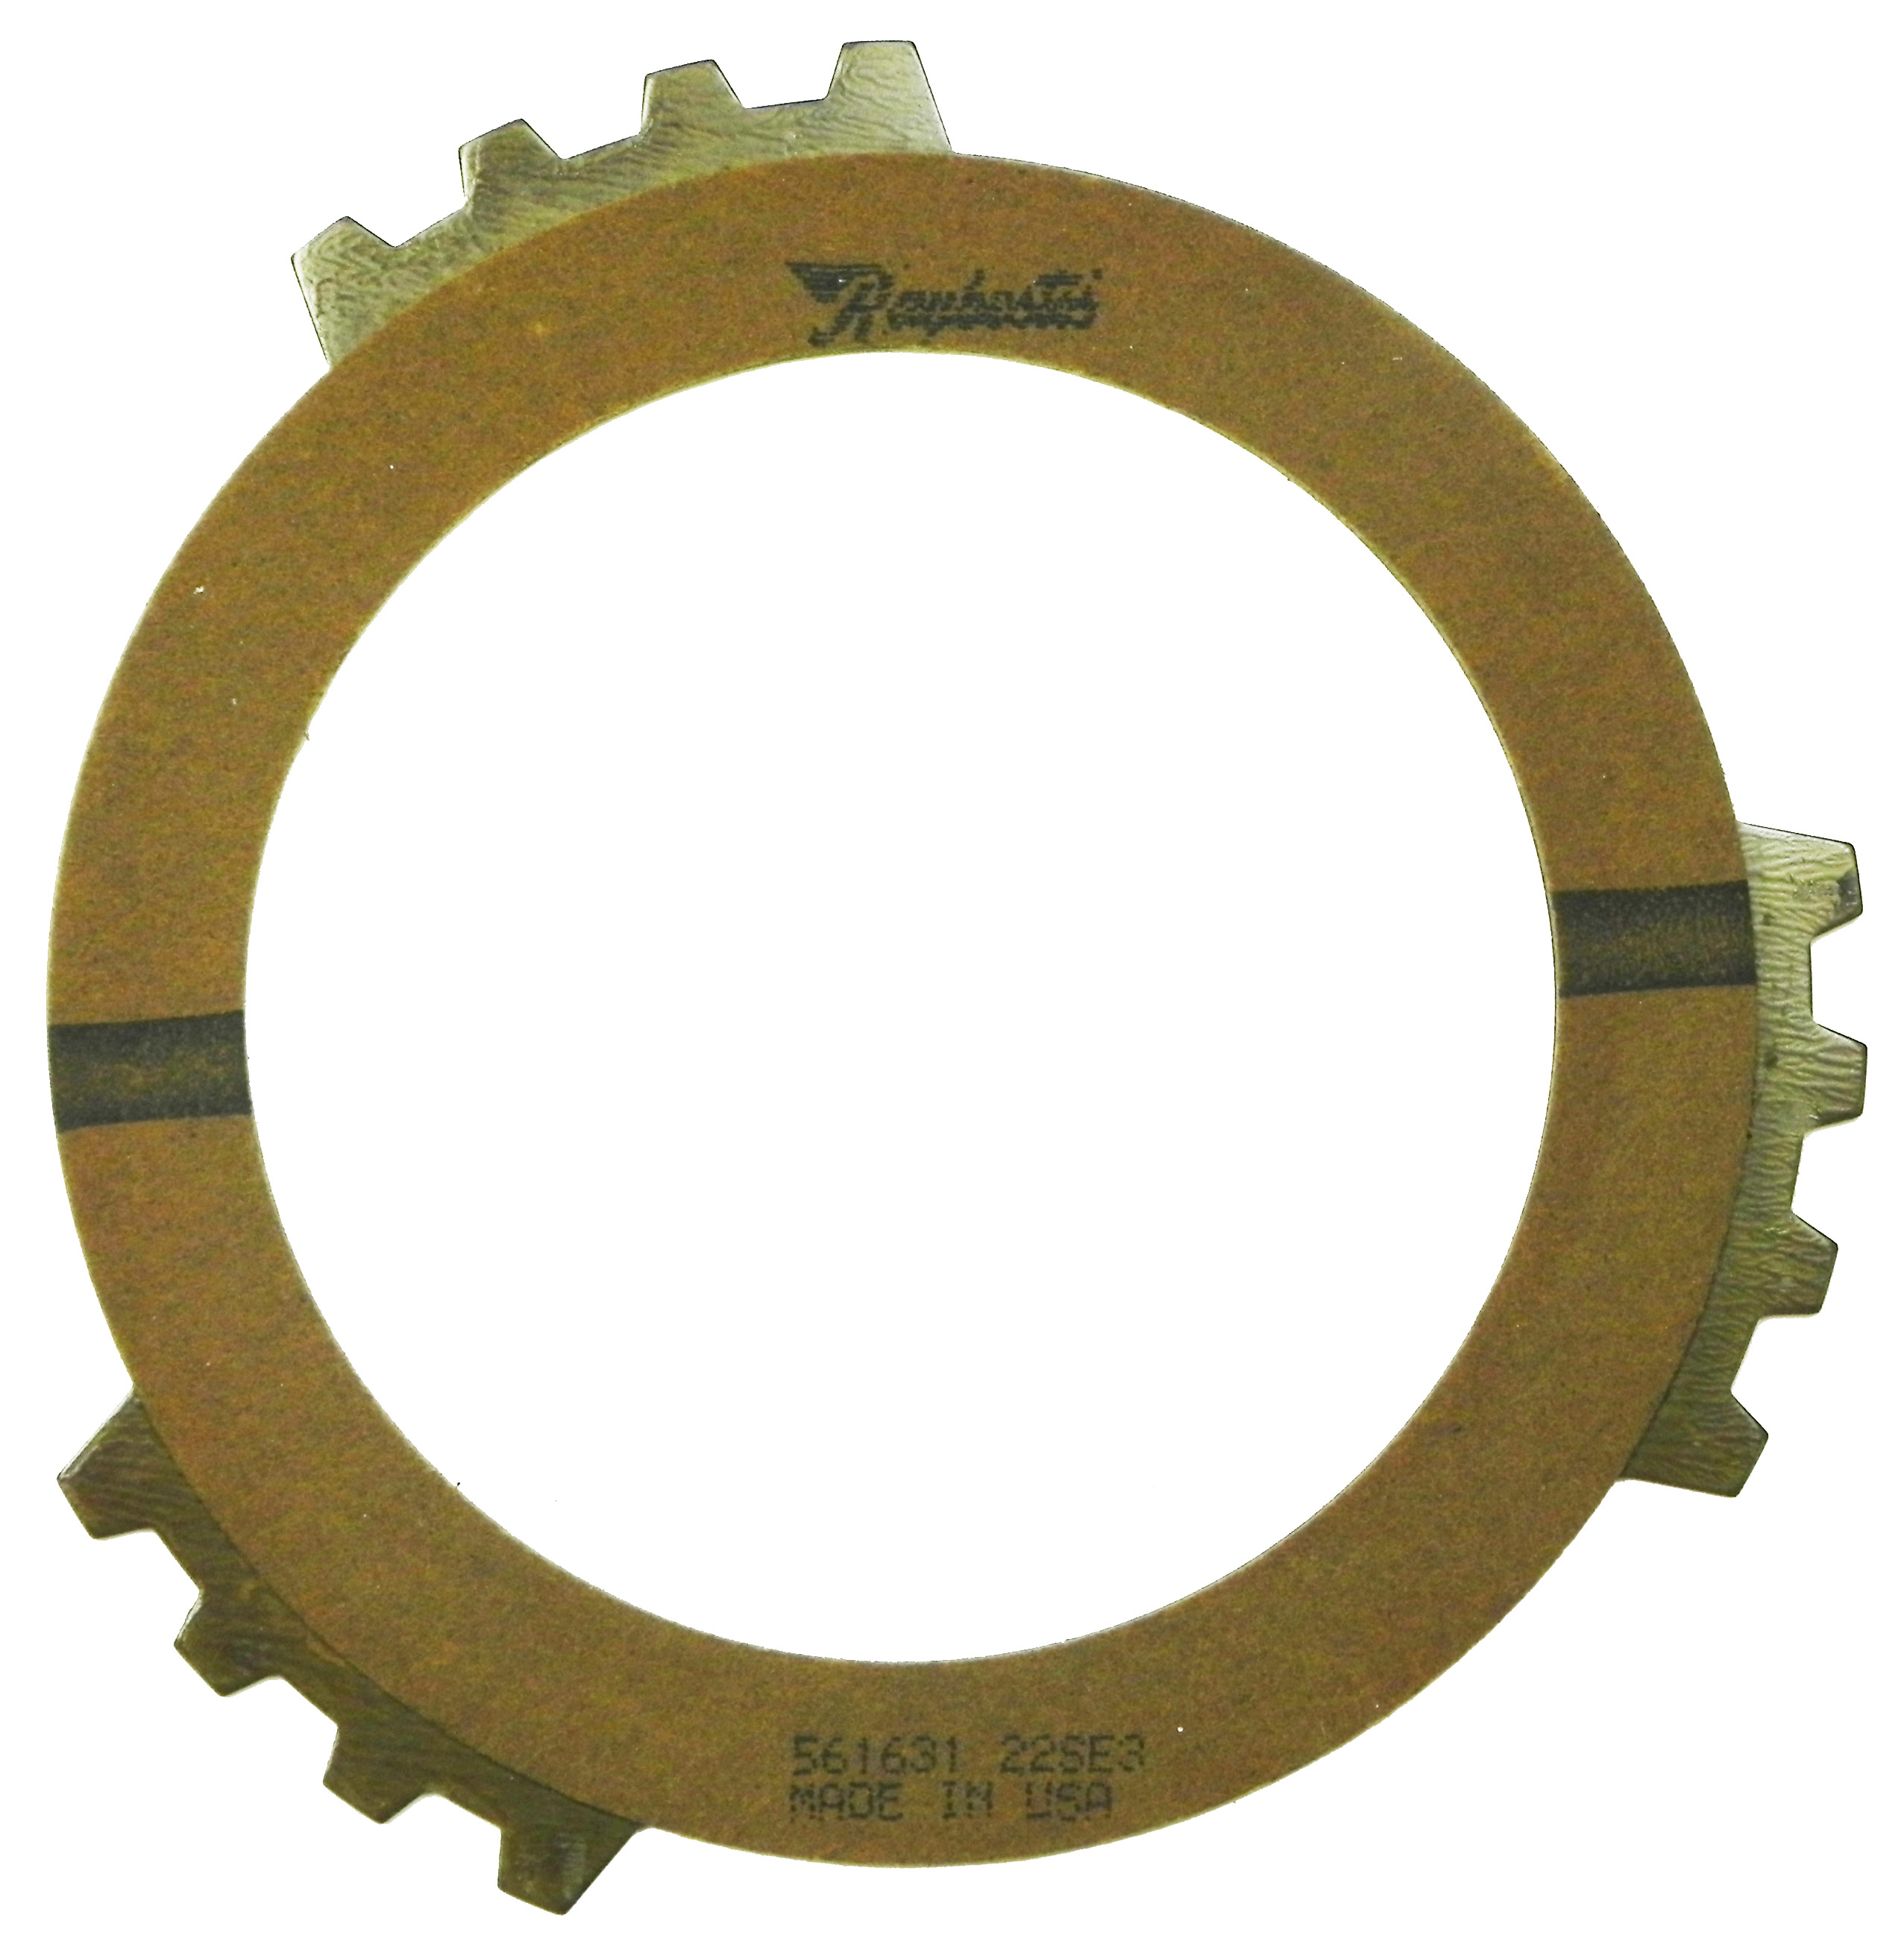 R561631 | 1983-1988 Friction Clutch Plate High Energy 3rd (4T60) Olive, Single Sided, OD Spline High Energy